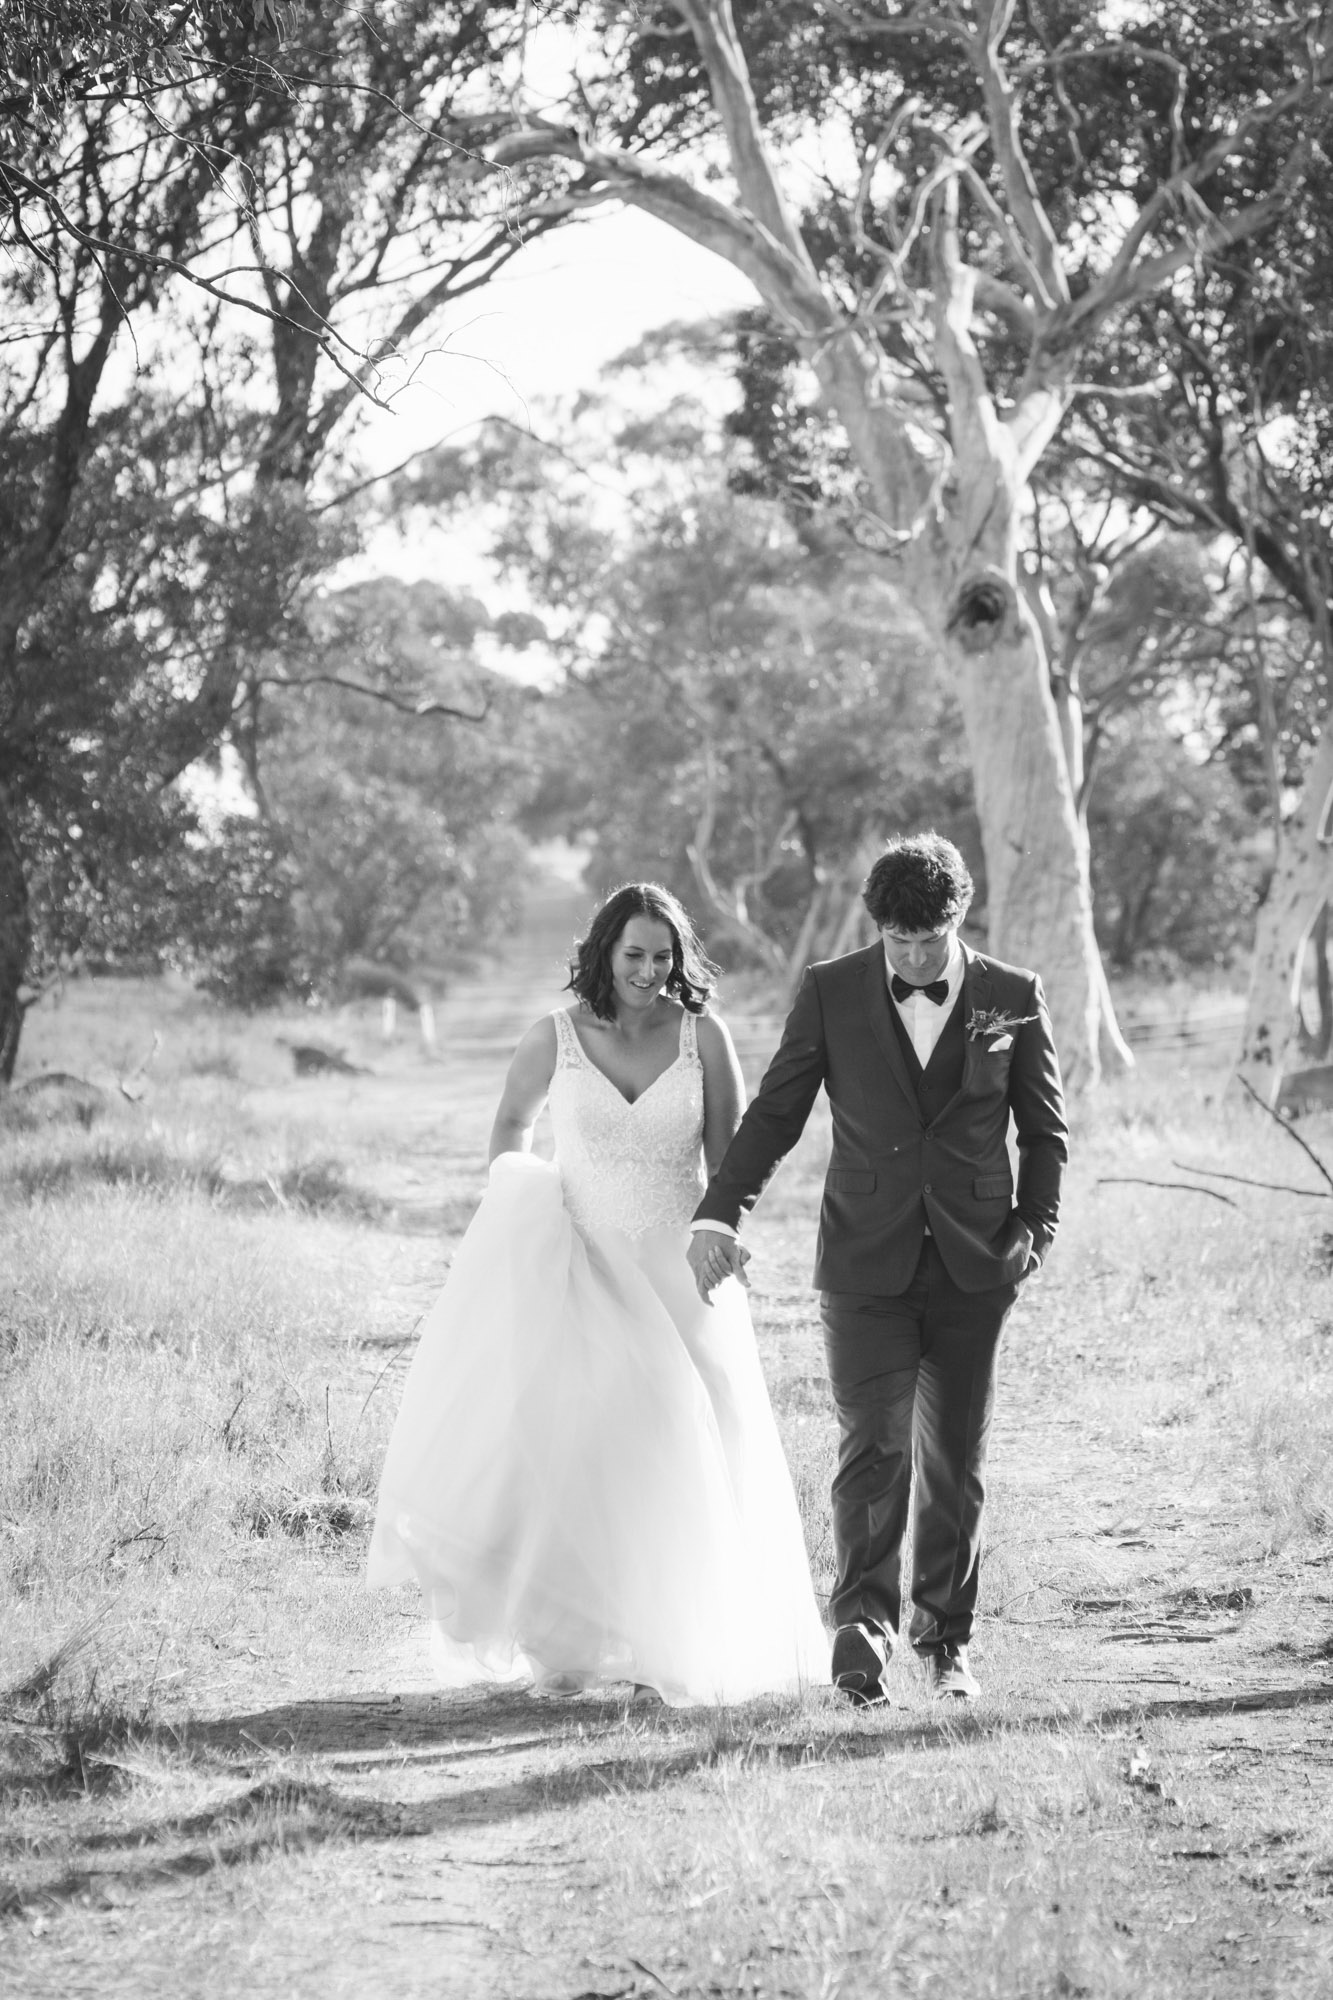 Angie-Roe-Photography-Wedding-Perth-Northam-Wheatbelt-Country-Rural (70).jpg